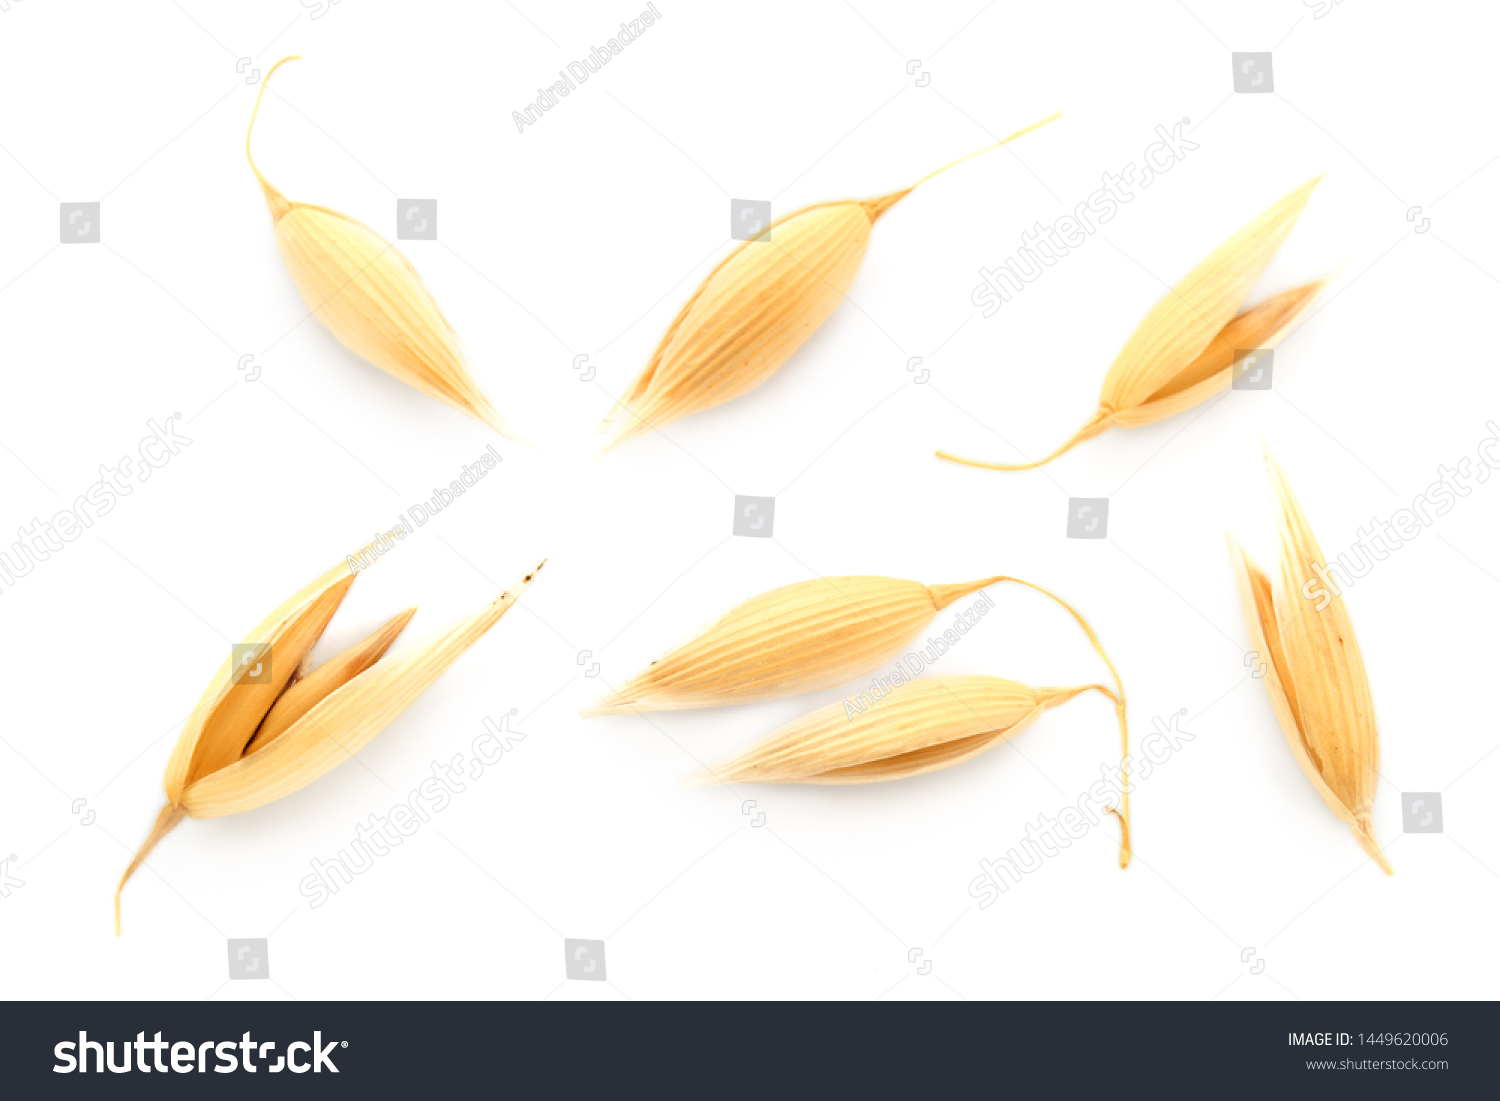 Oat seeds are isolated on white with a shadow. Oat seeds isolated on a white background. Set of oat grains isolated on white background. Top view of oat grains. #1449620006